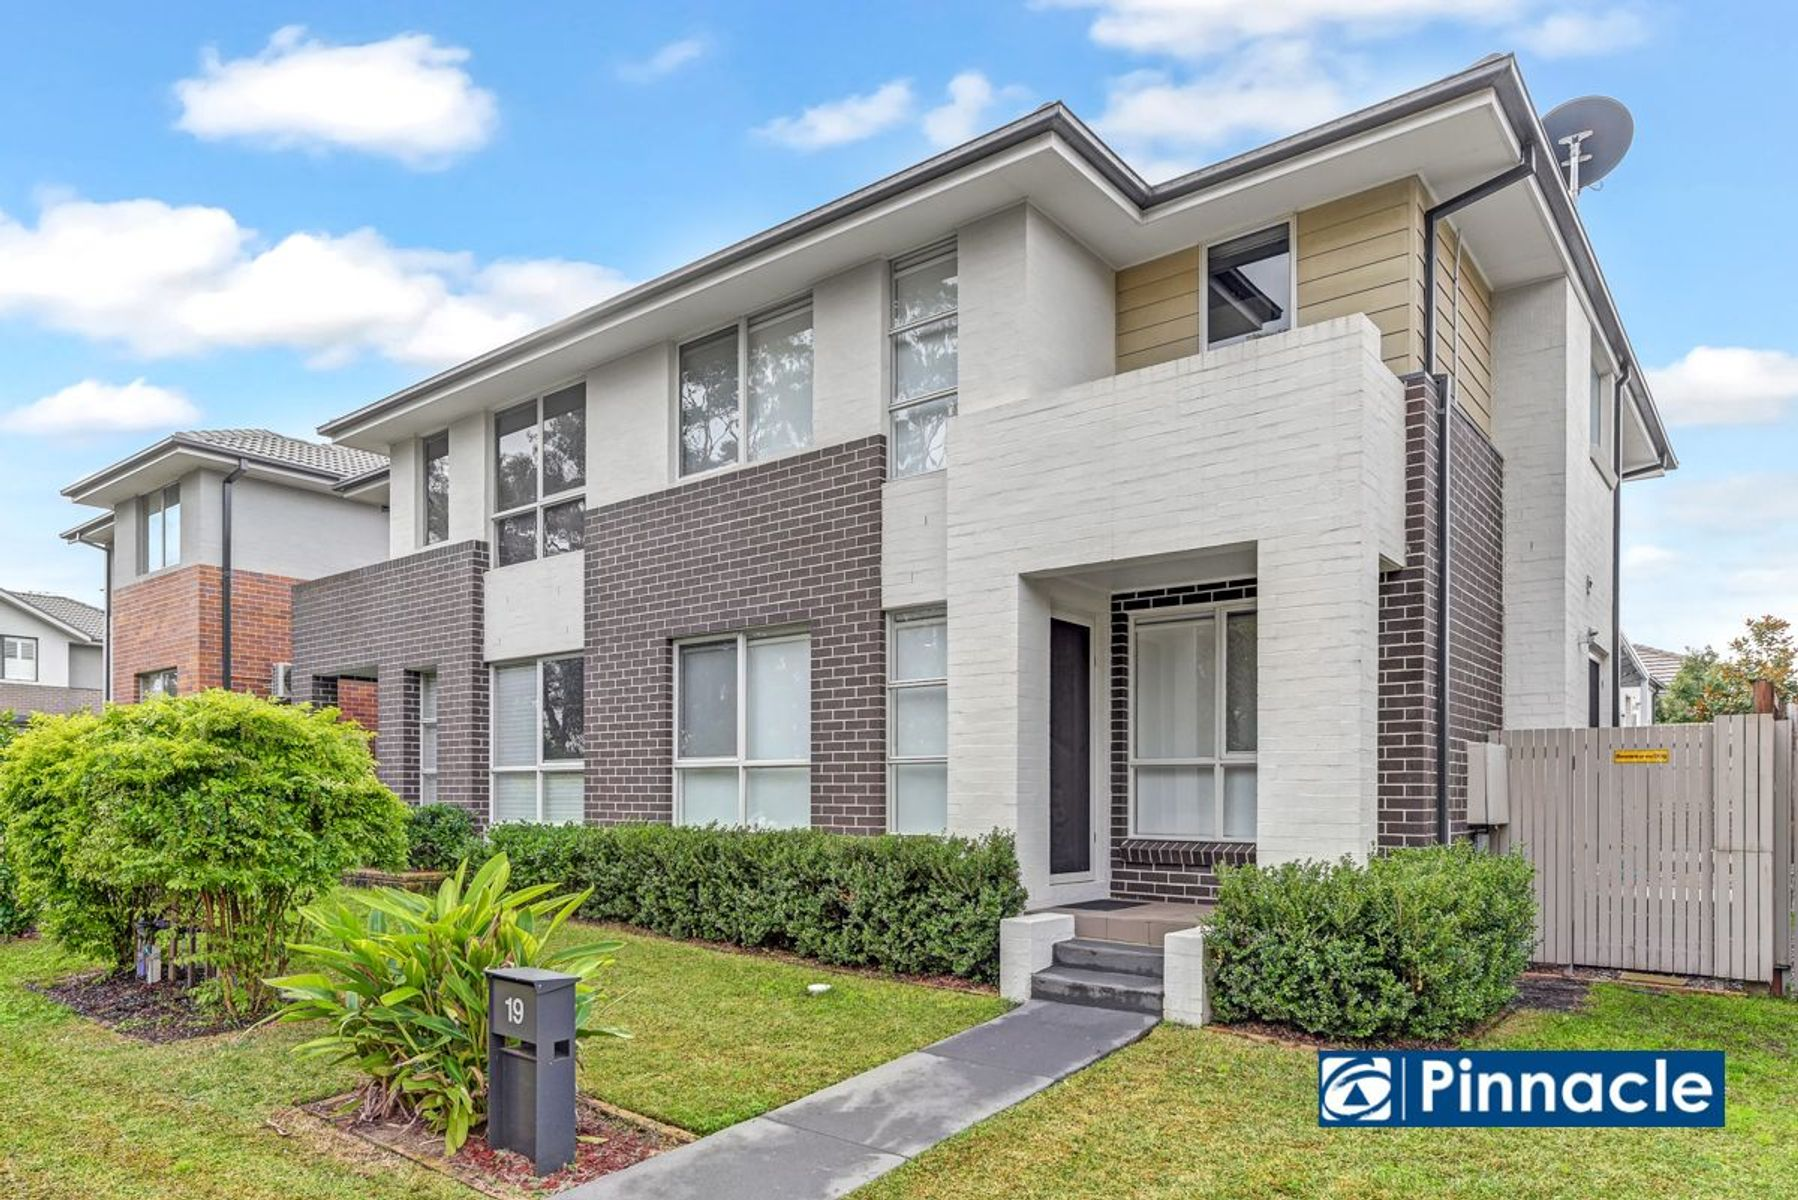 19 Three Bees Drive, Glenfield, NSW 2167